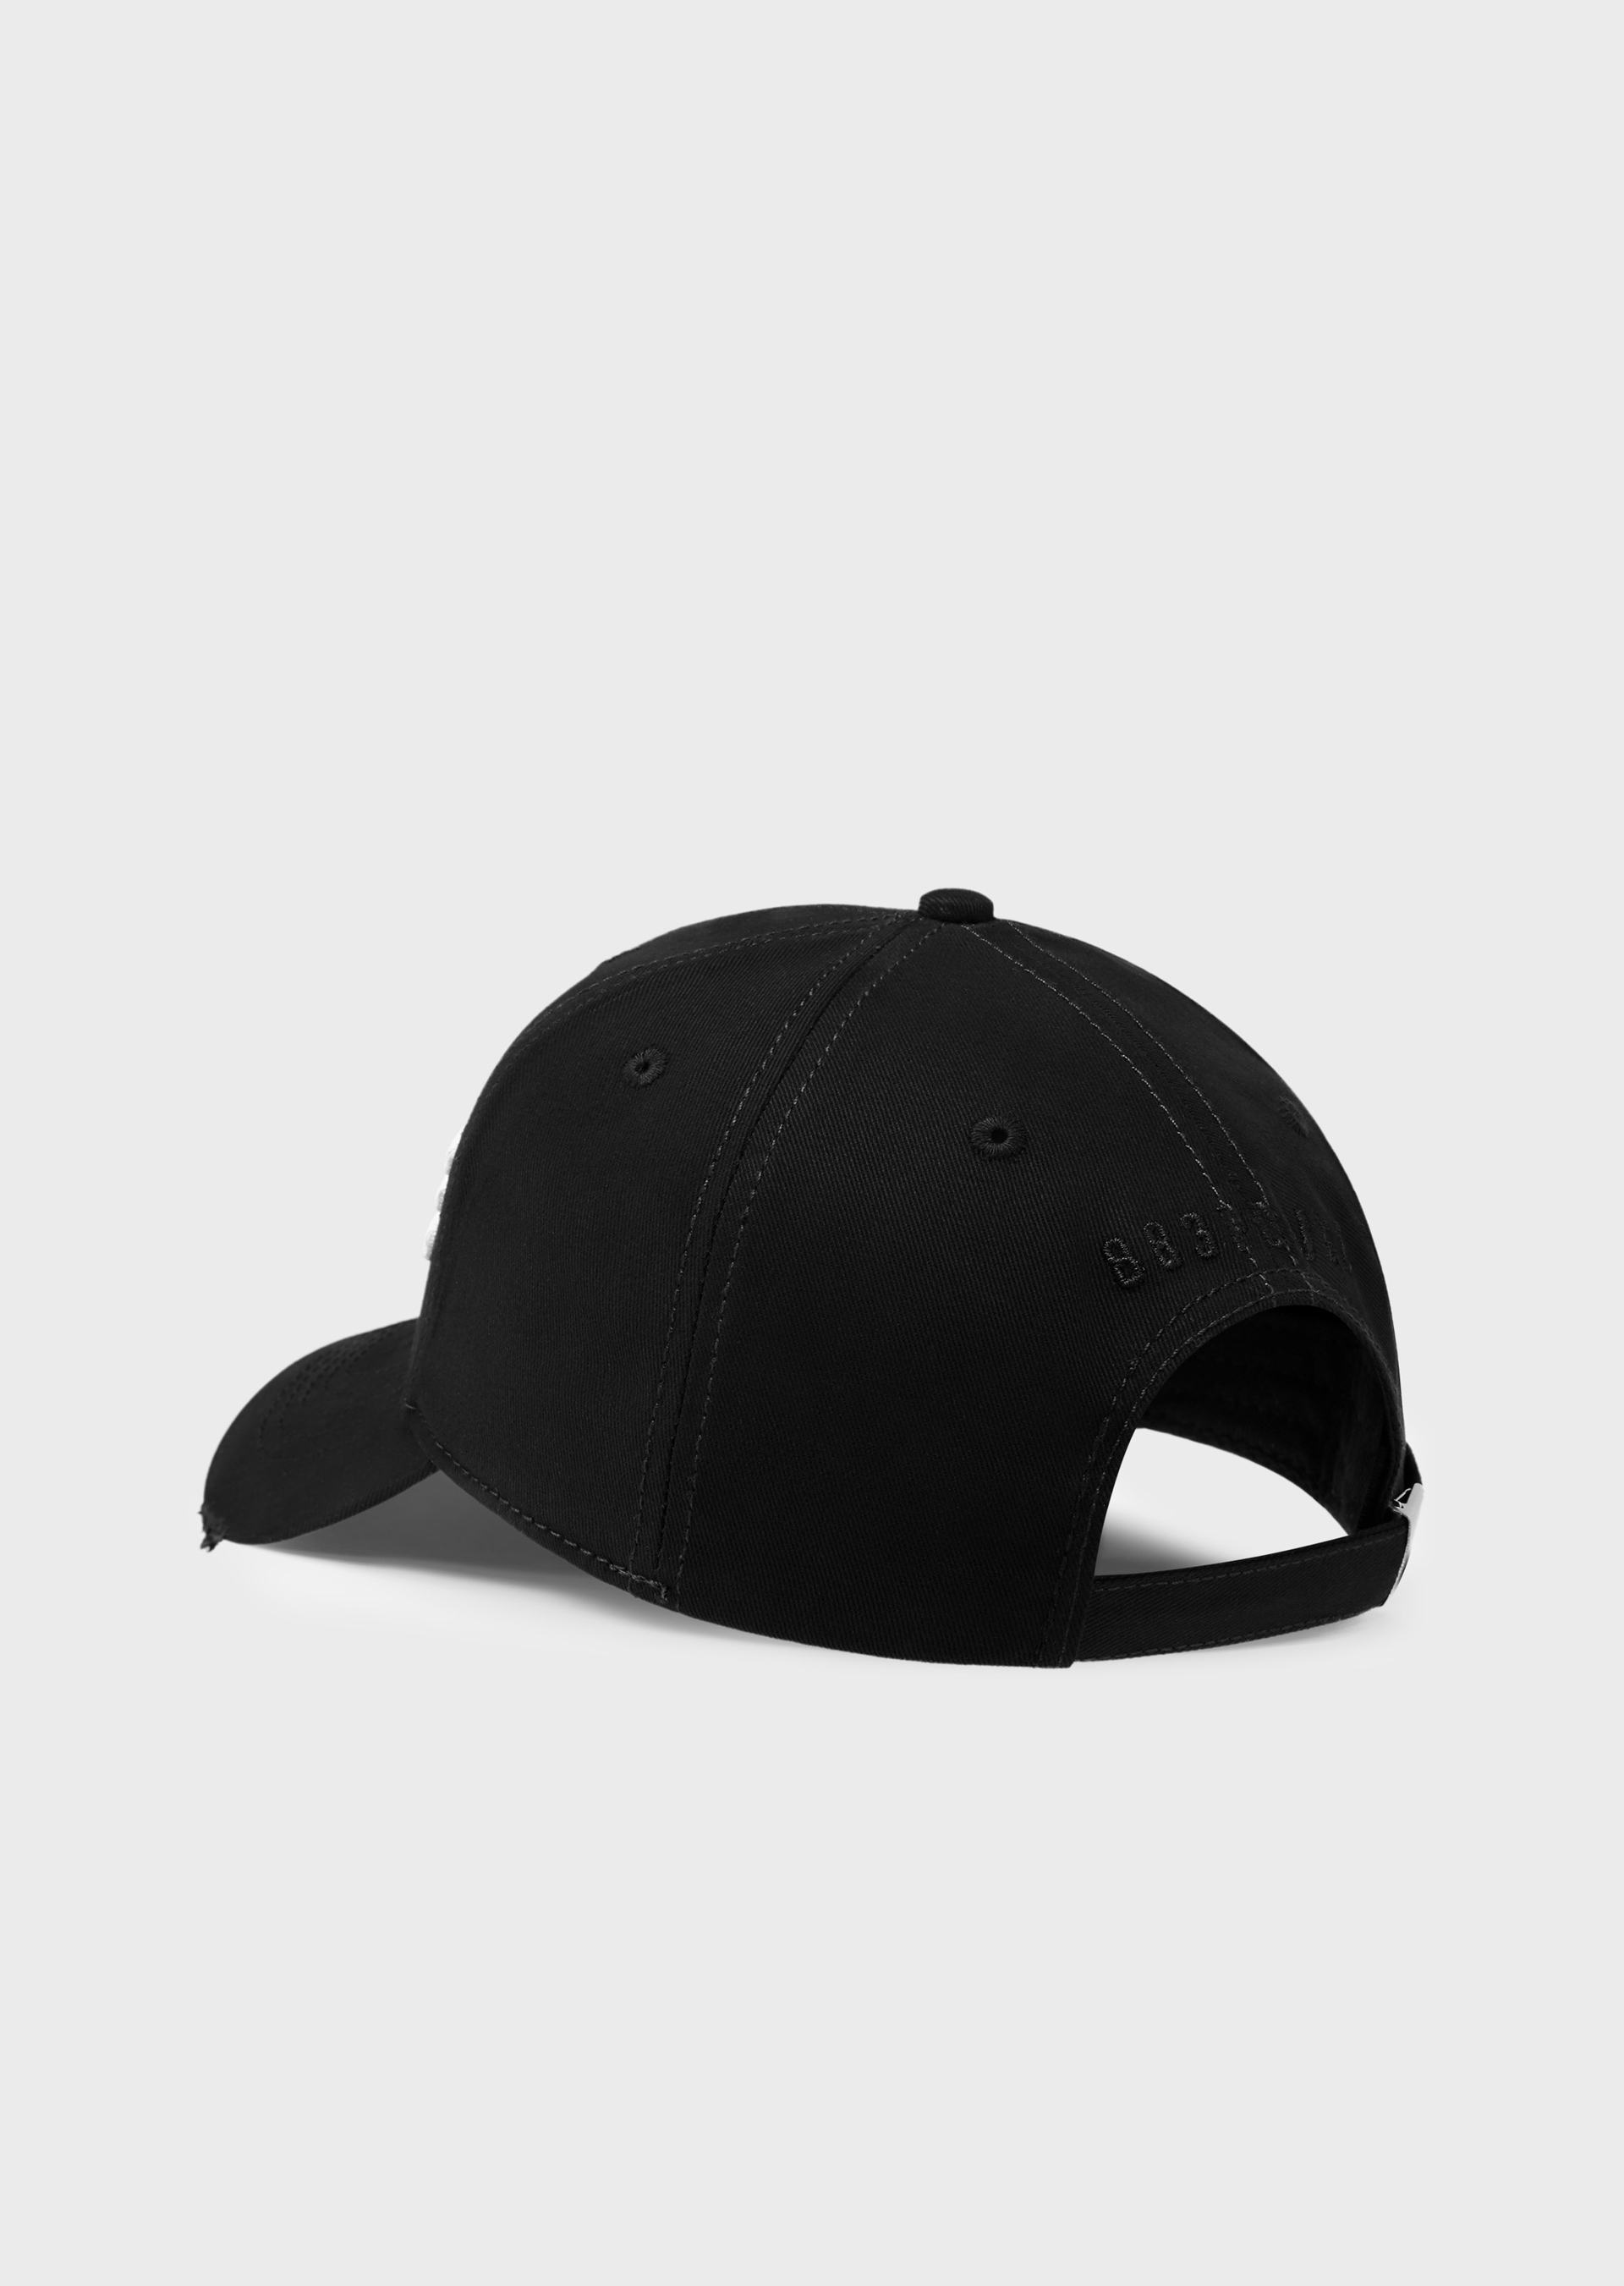 Floating Cap second_image